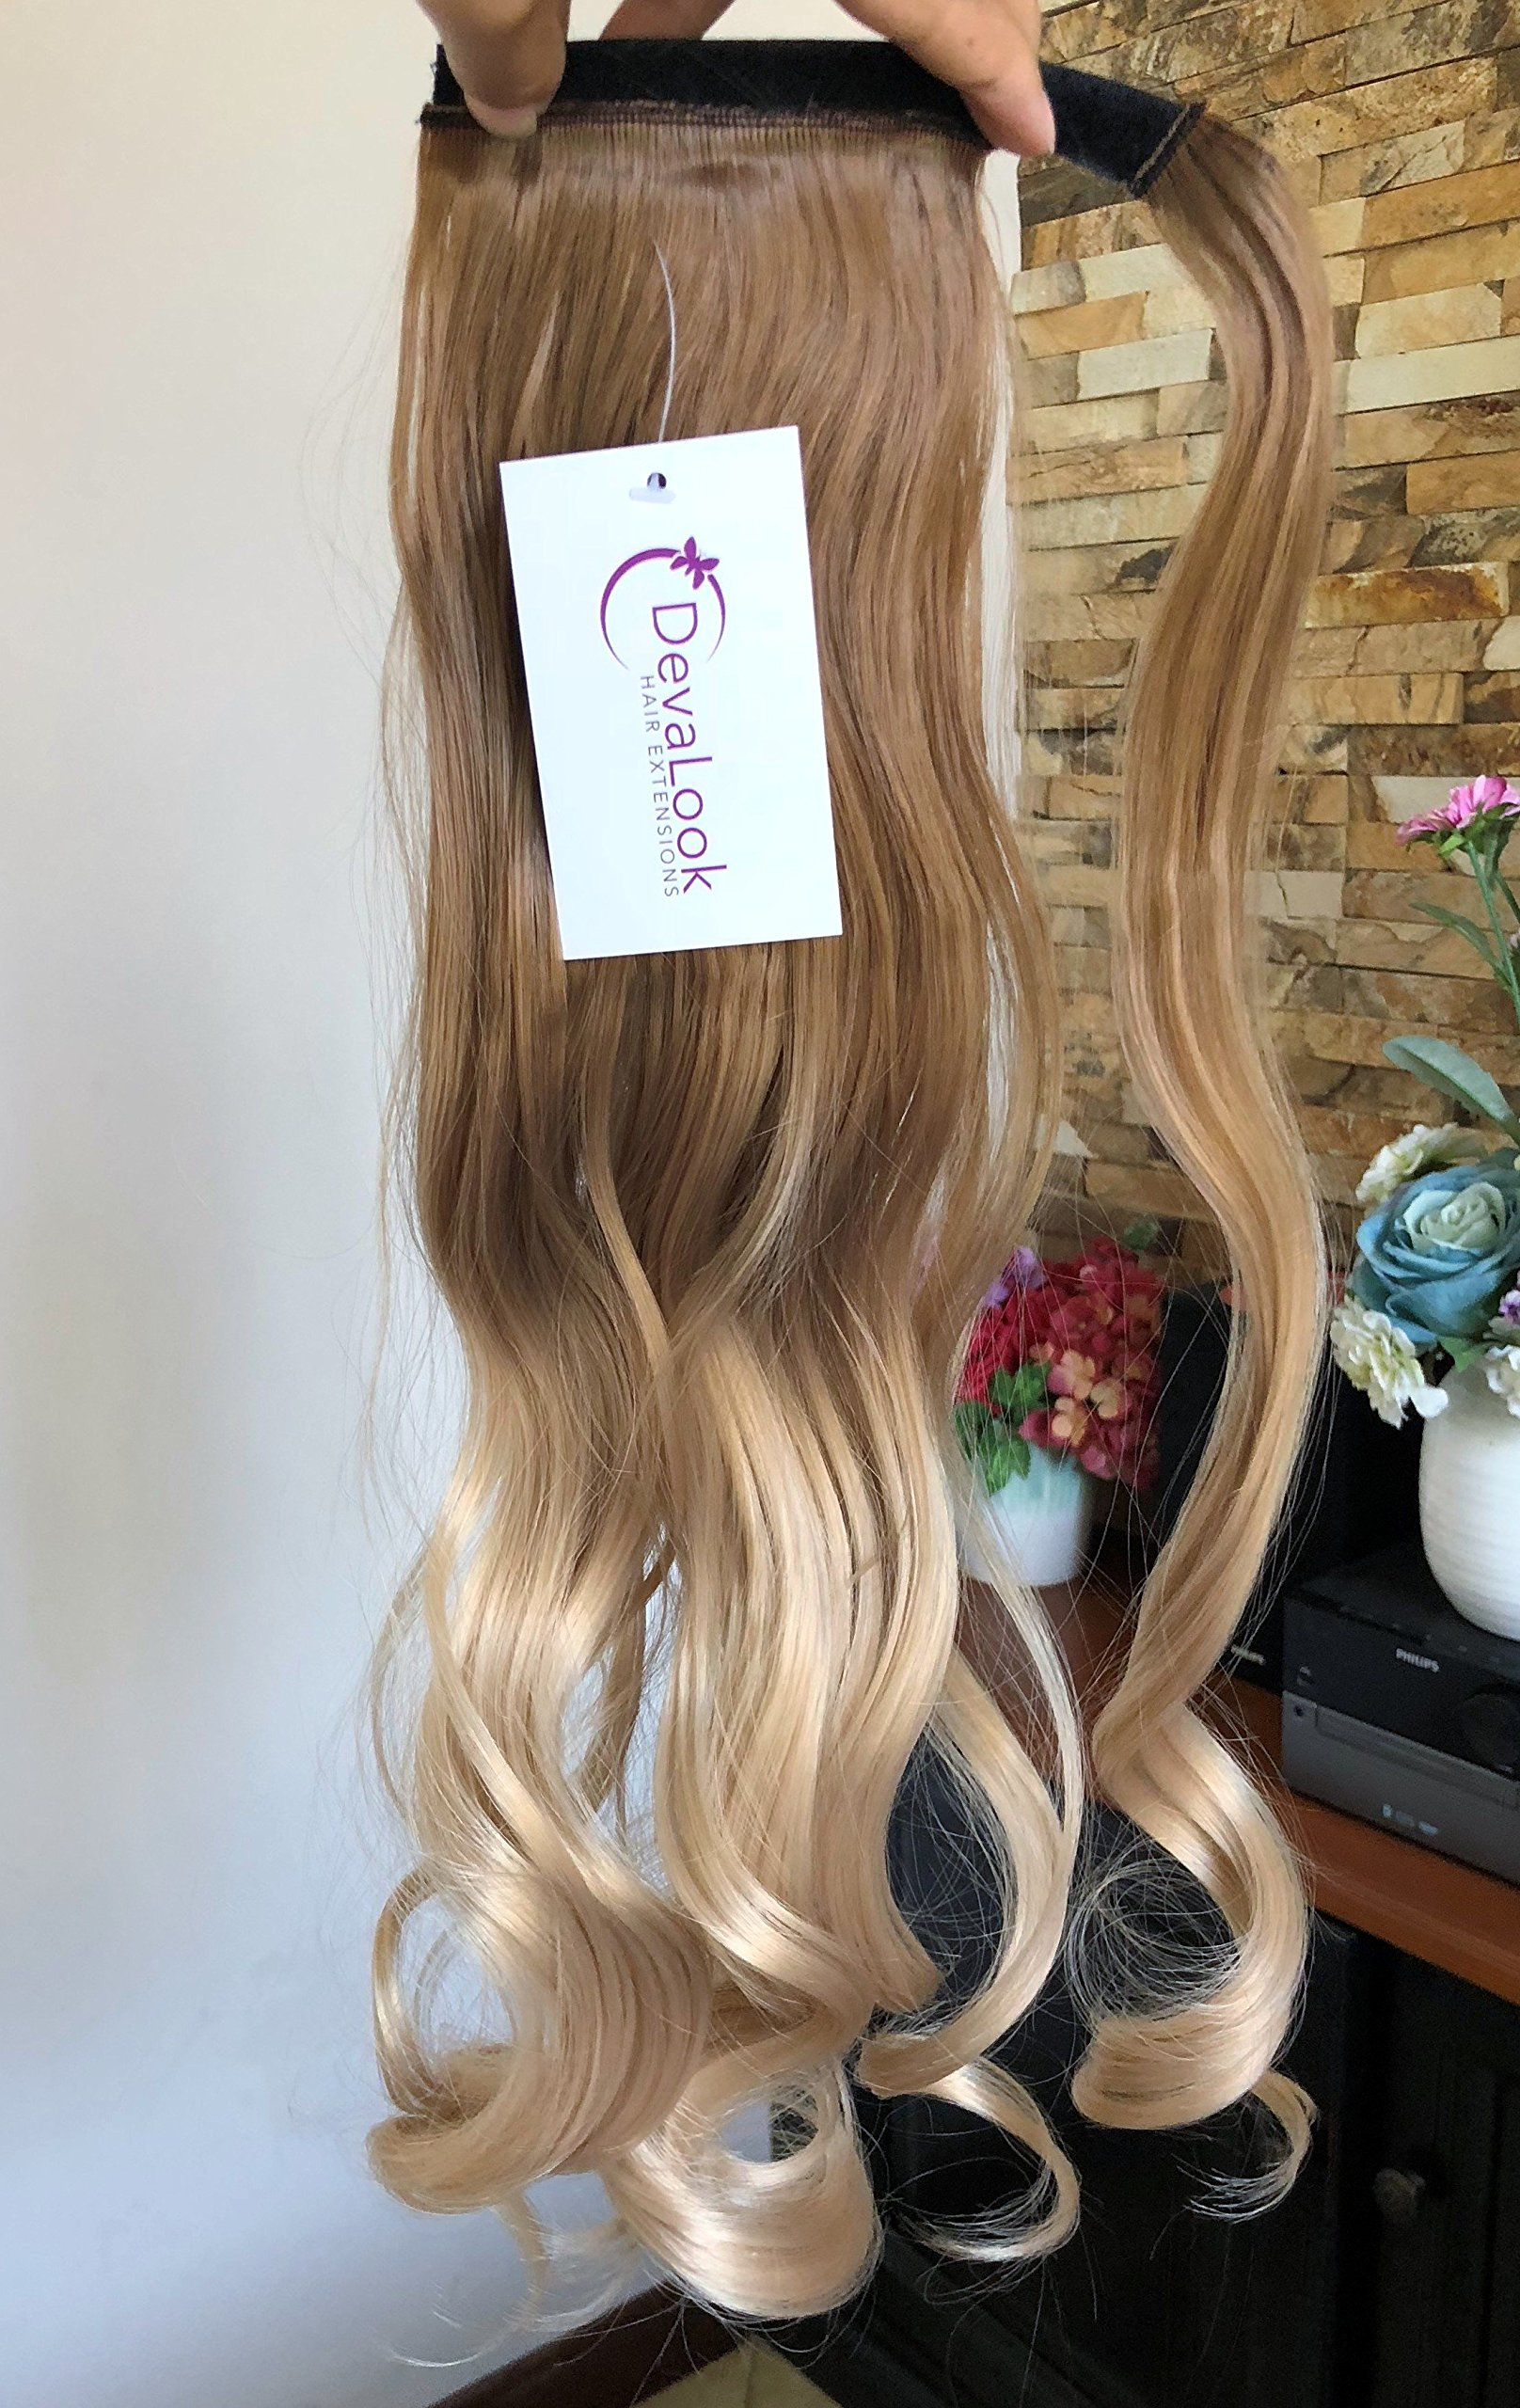 20'' Synthetic Wavy Curly Ombre Wrap Around Ponytail Clip in Hair Extensions Hairpieces (Wavy-light brown to sandy blonde)